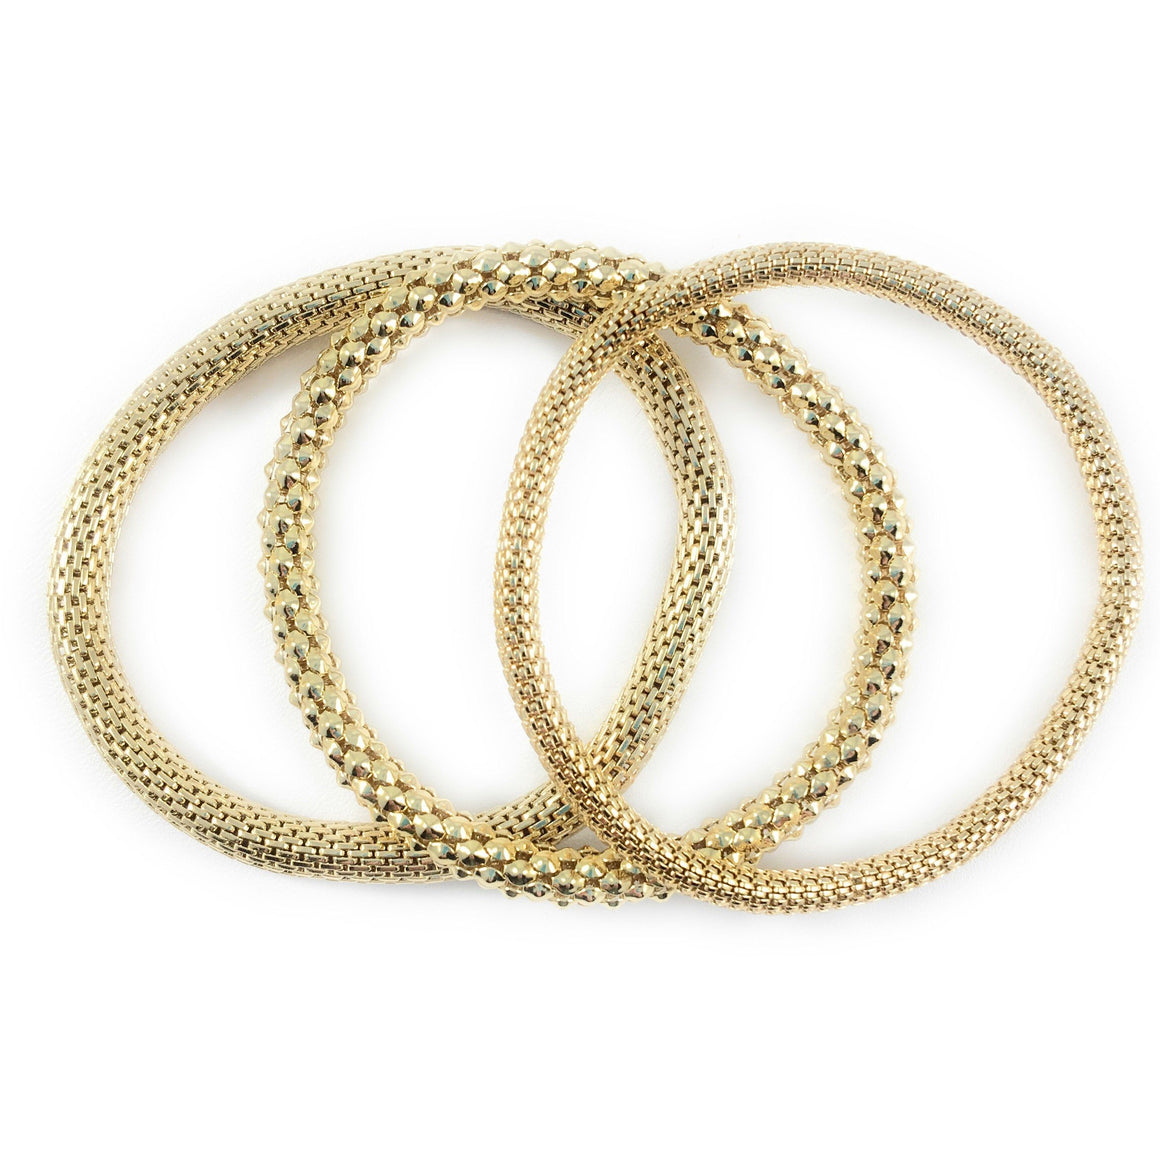 12K Gold Filled Mesh Chain Stretch Bracelet Bracelets Set of 3 (Two 6mm One 4mm) - Beads and Dangles